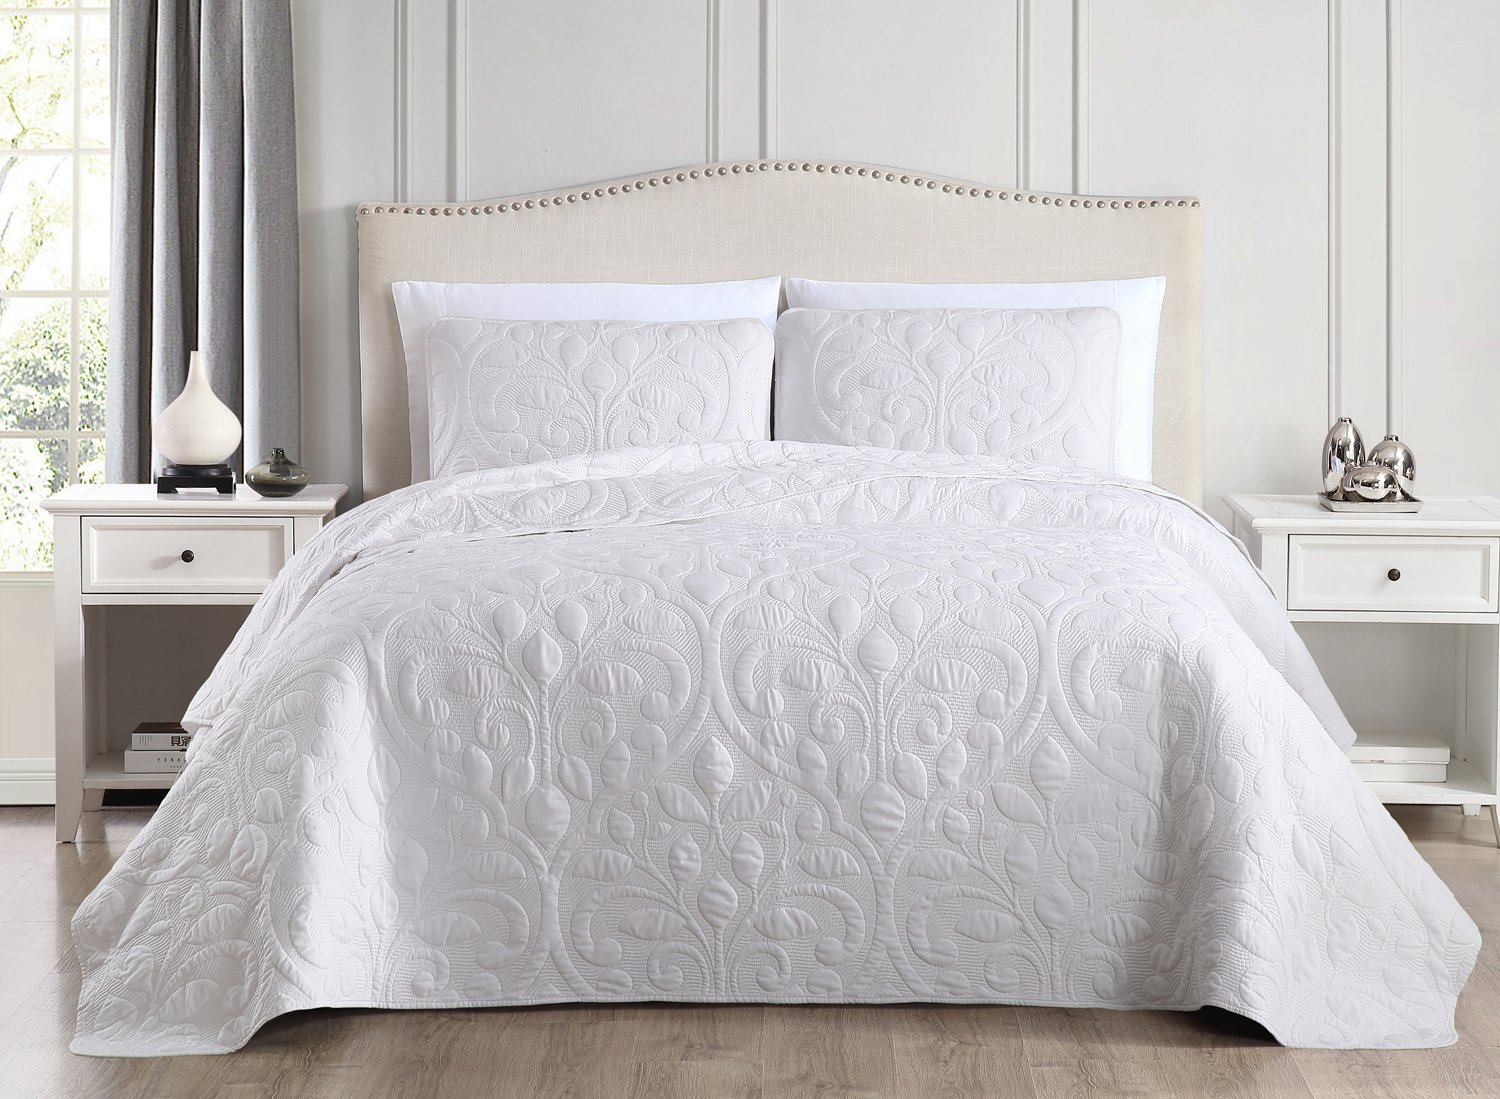 SuperBeddings Pre-Washed Embroidered Coverlet Set 65/% Bamboo Rayon 35/% Polyester